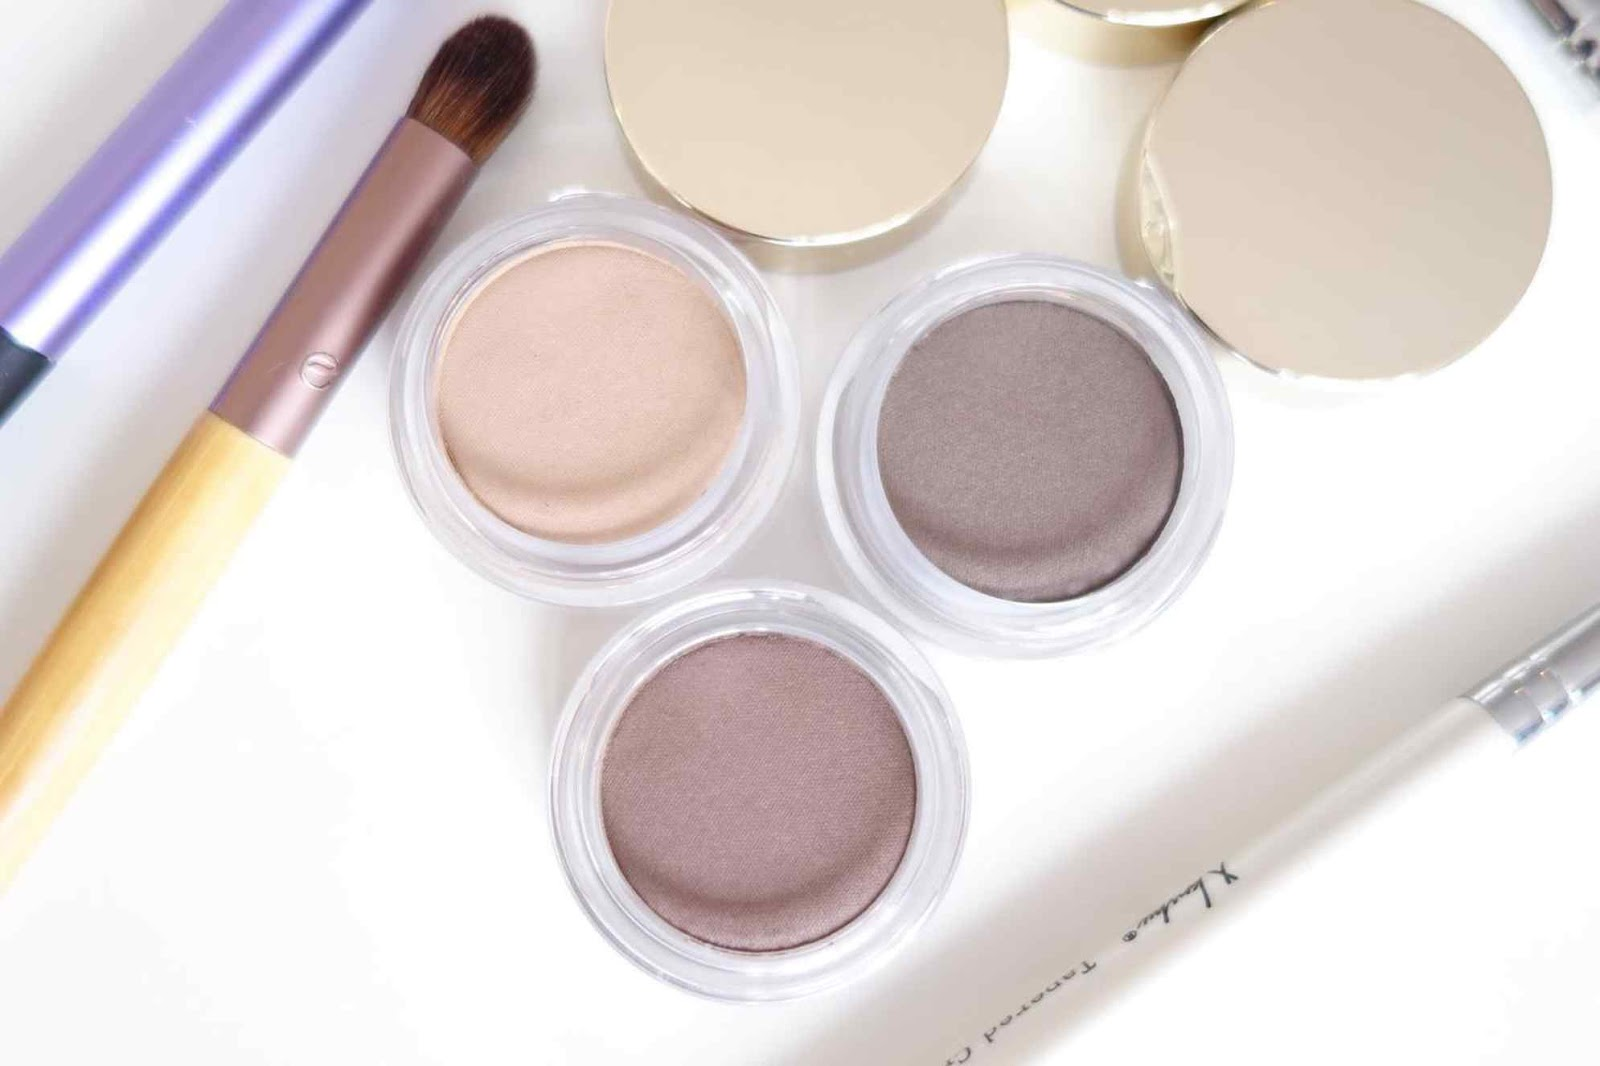 Clarins-Ombre-Matte-Cream-to-Powder Eyeshadow-Taupe-Rosewood-Nude-Beige-Review-and-Swatches